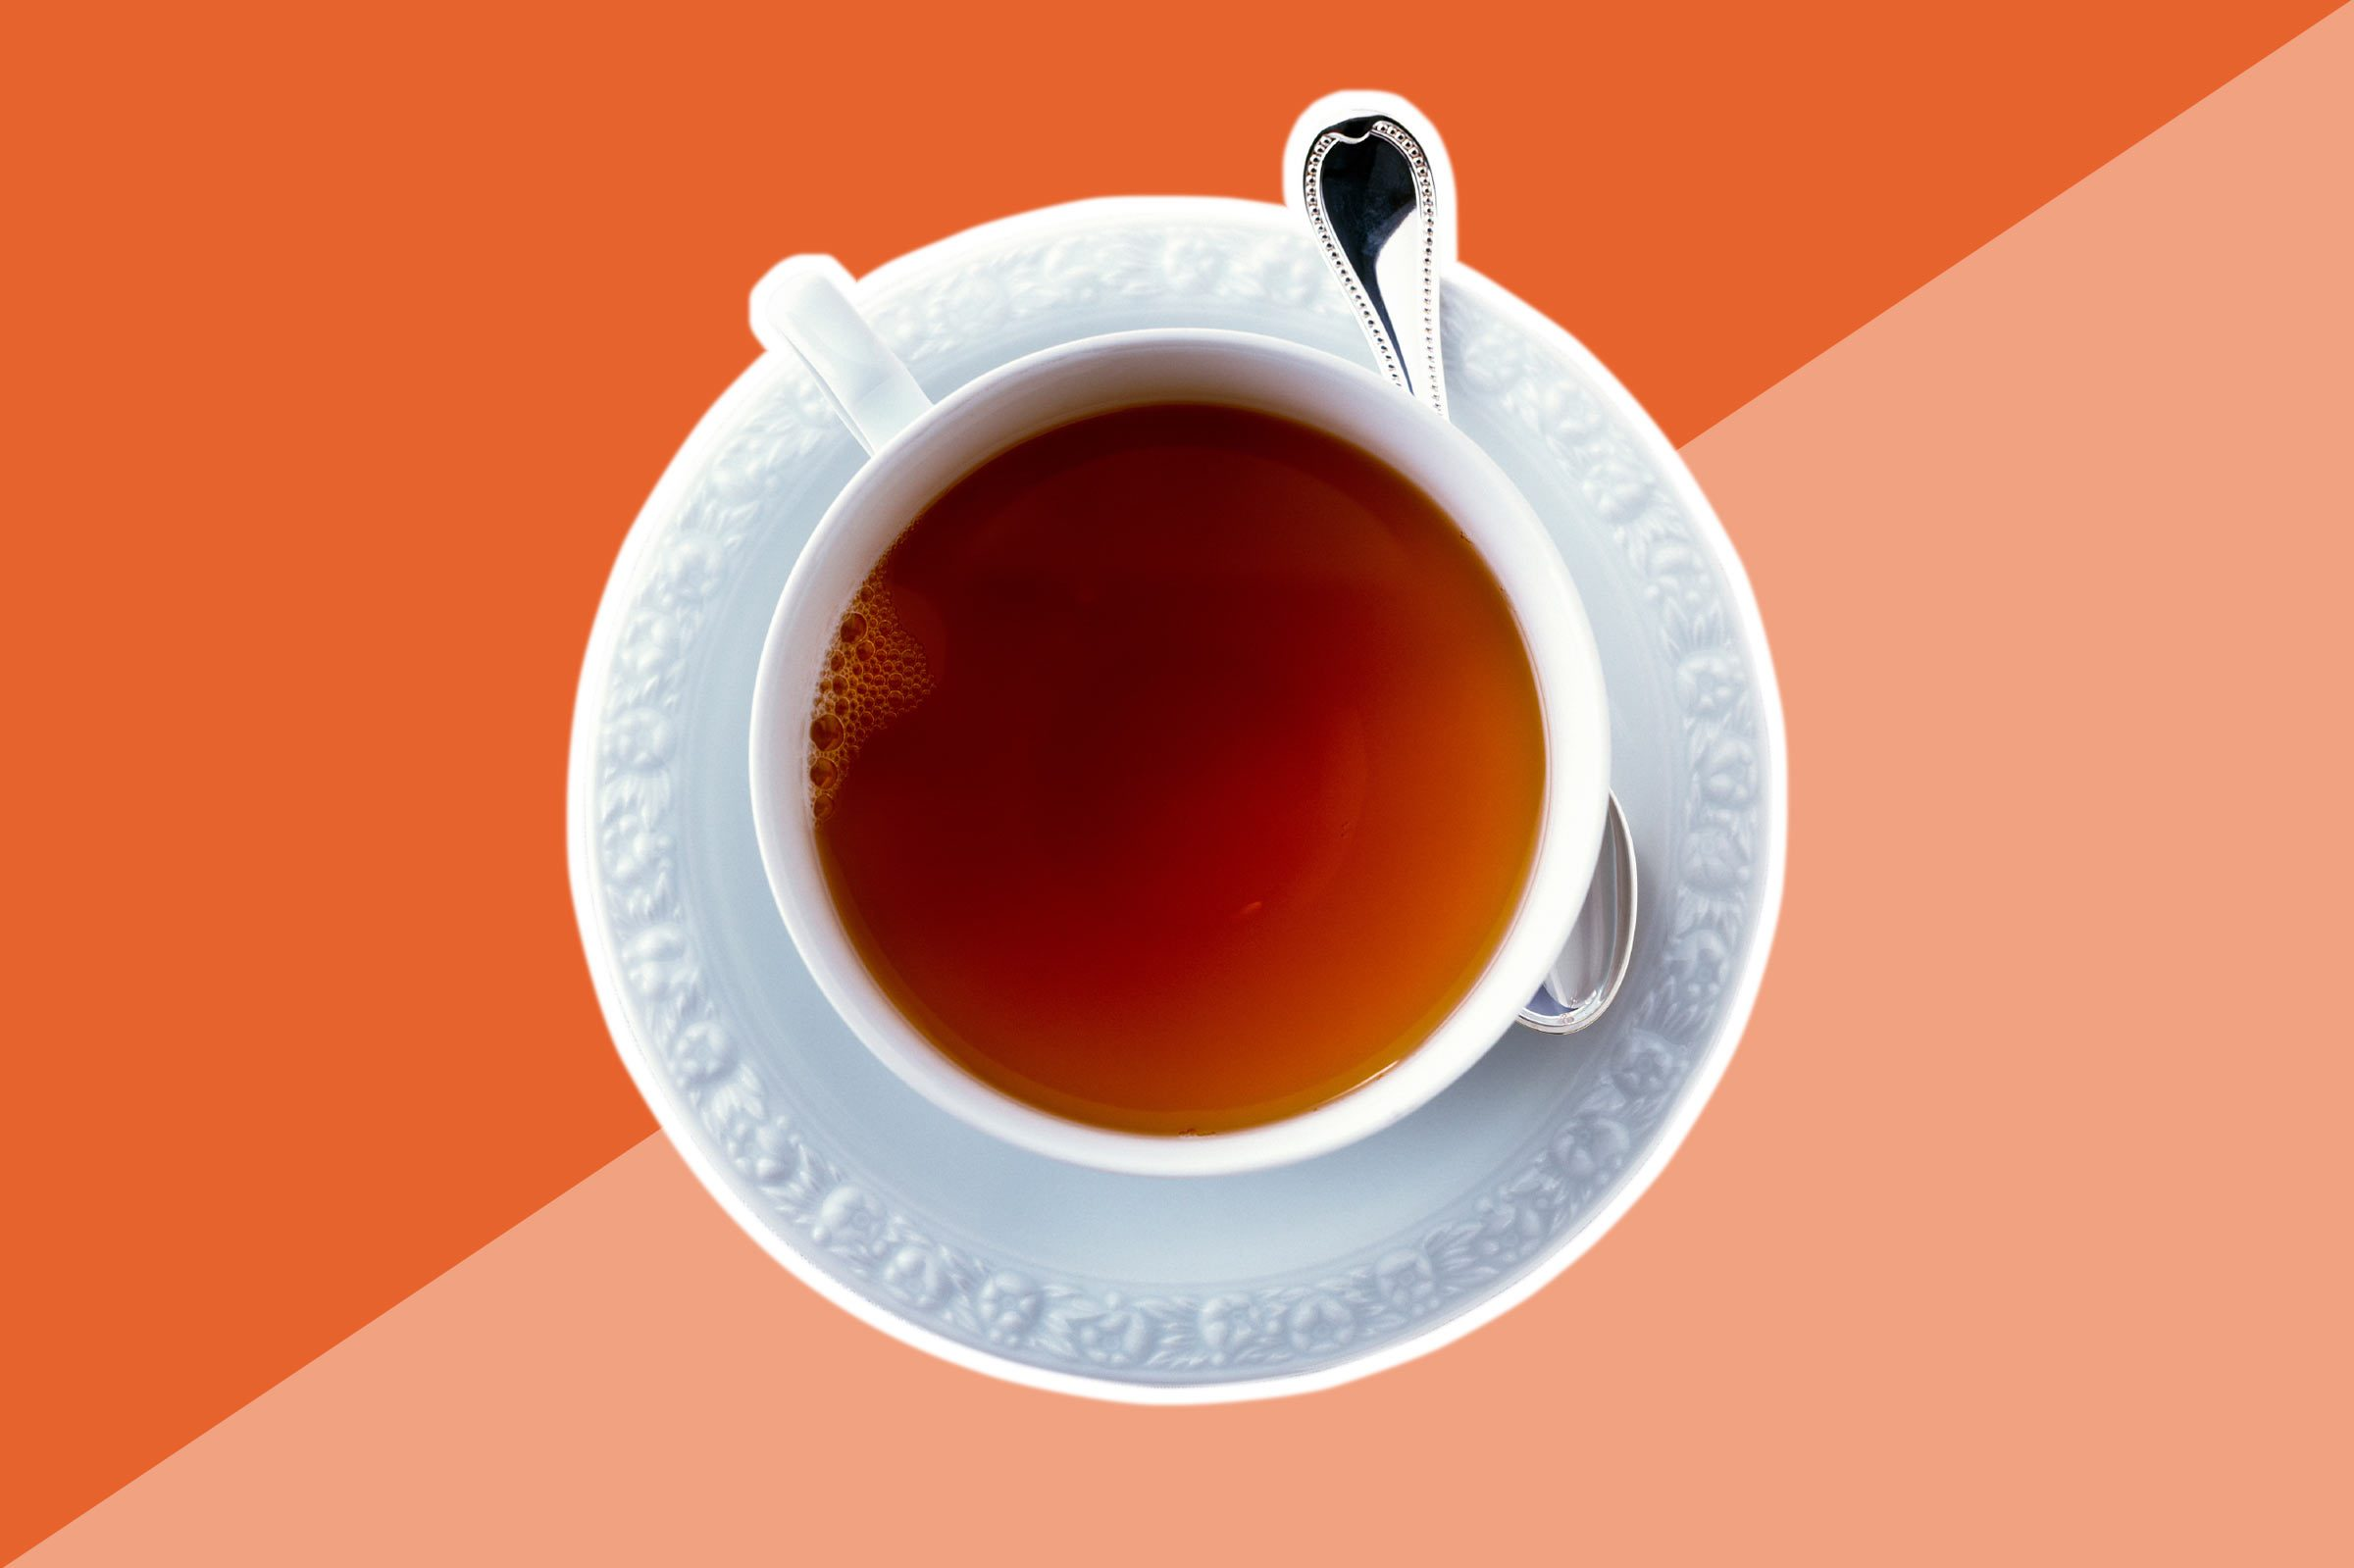 Try tea and see